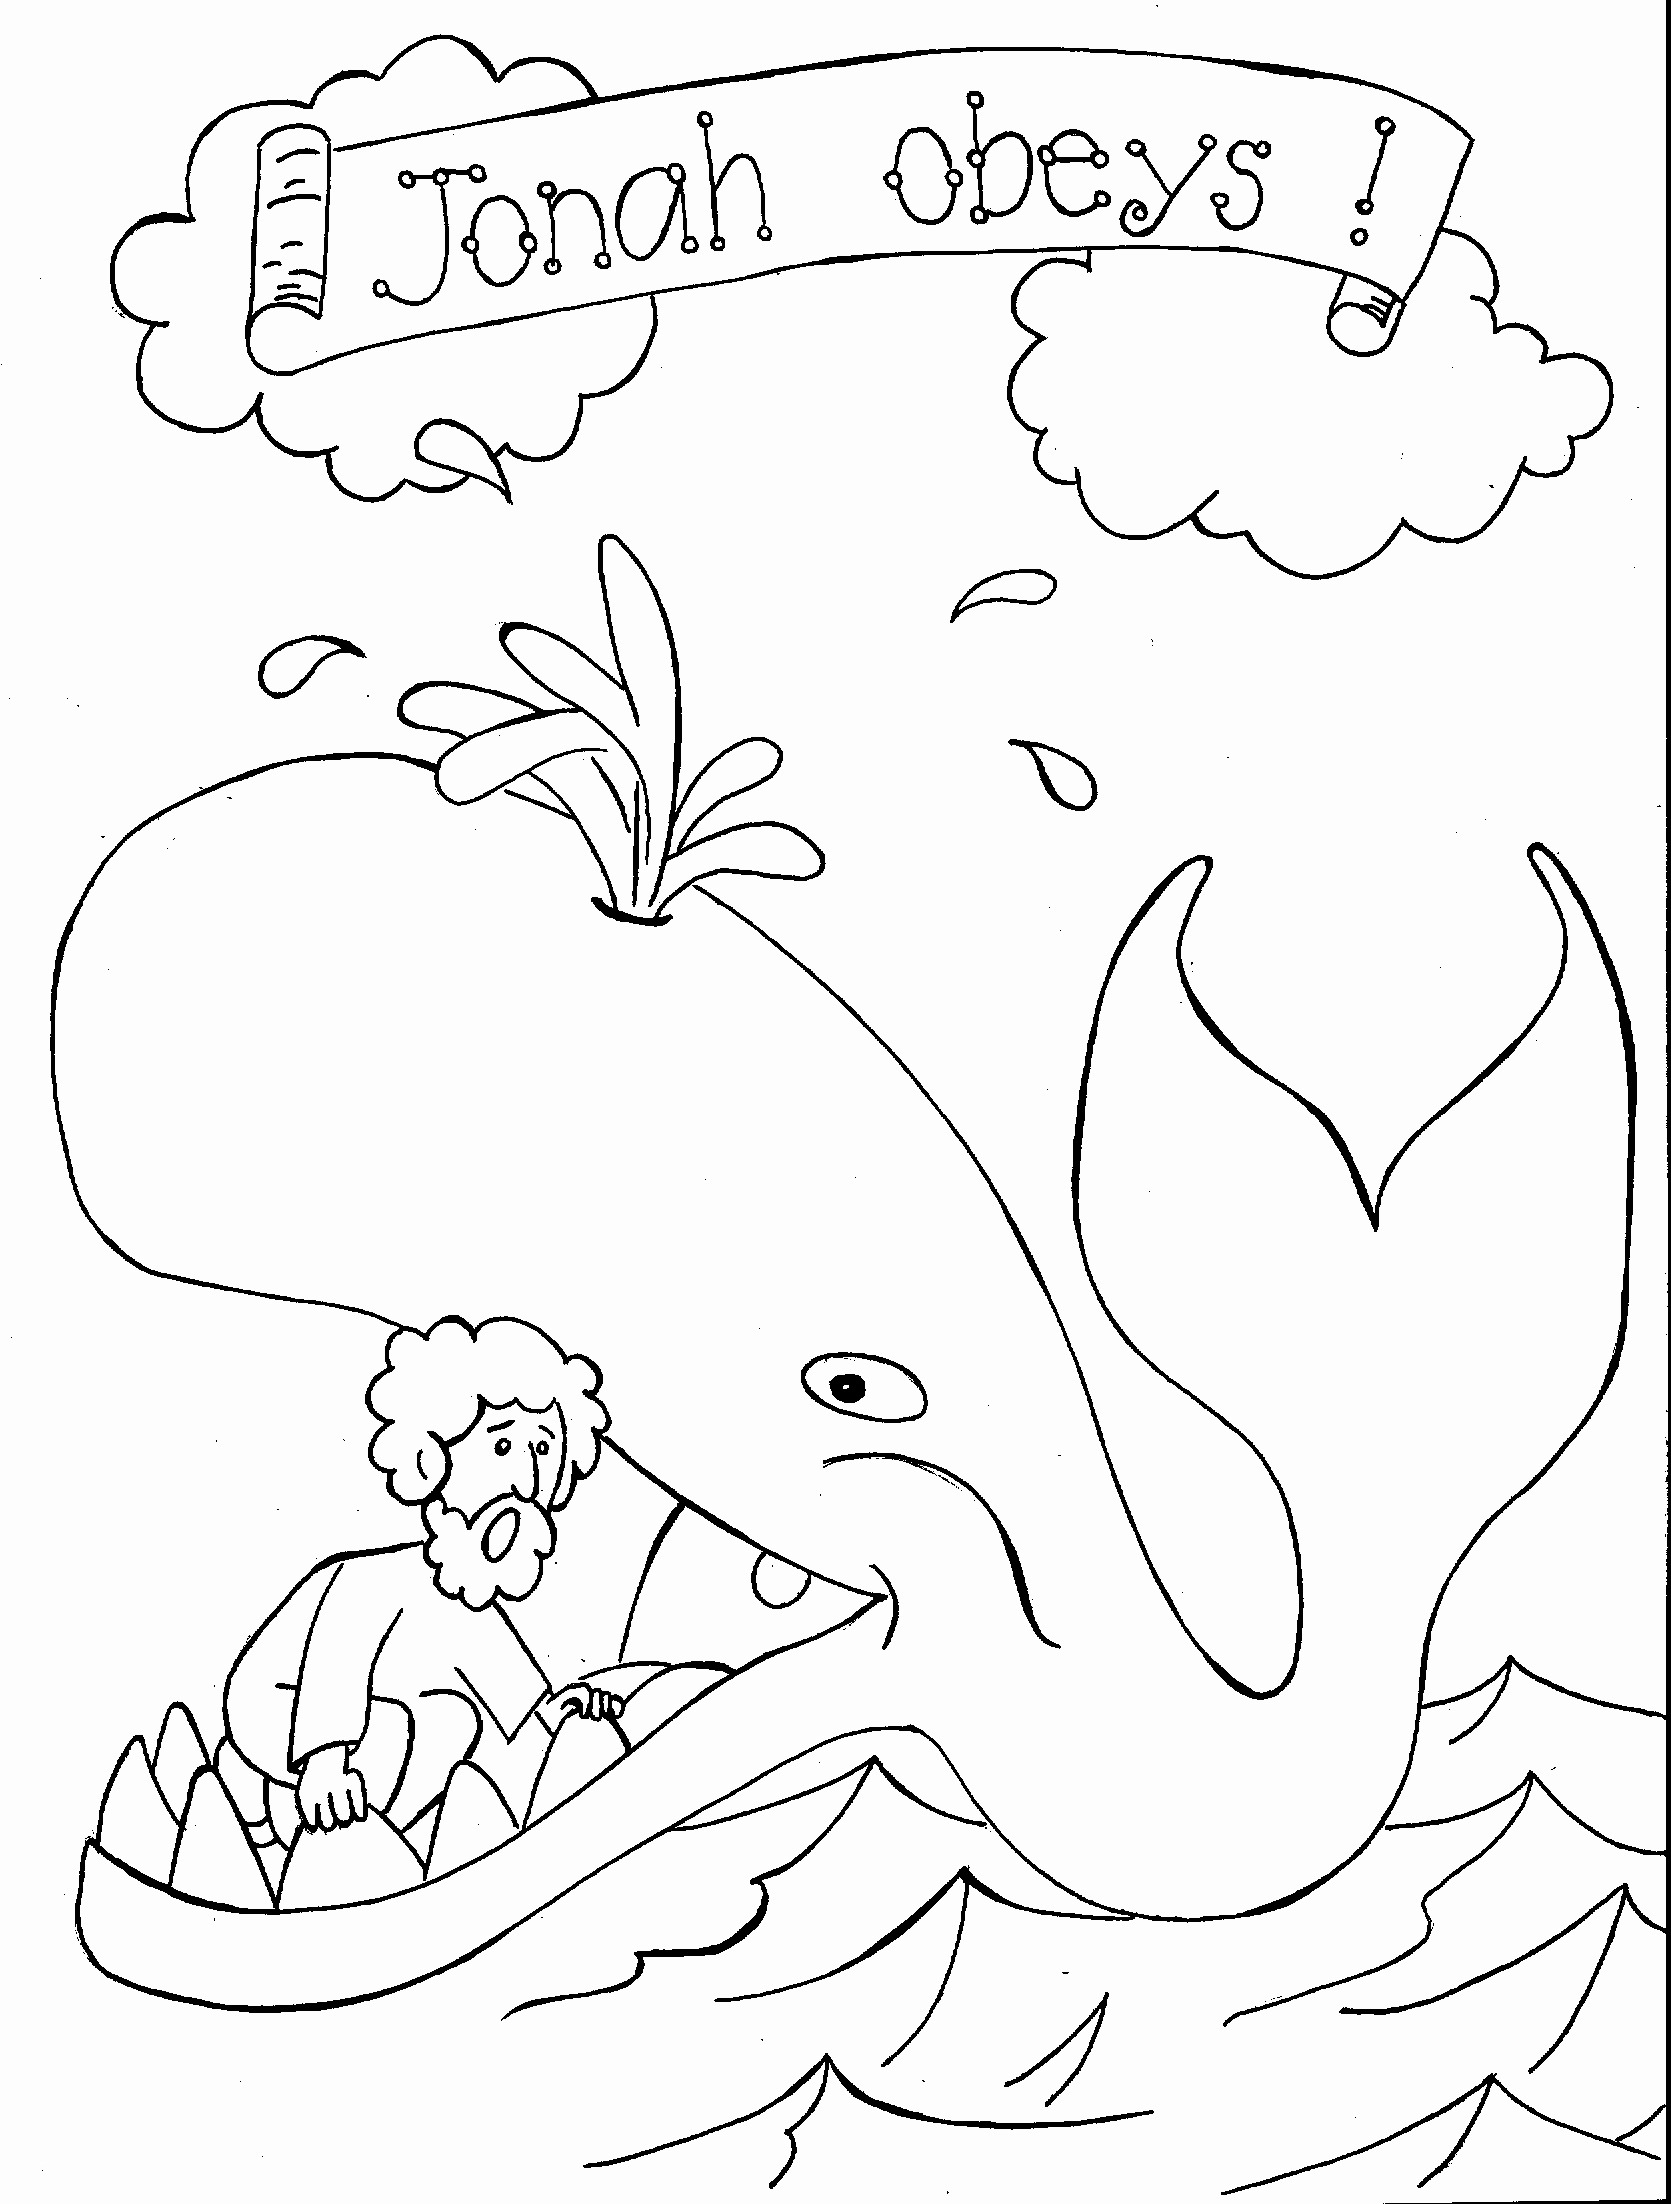 29 Books Of the Bible Coloring Pages Download - Coloring Sheets